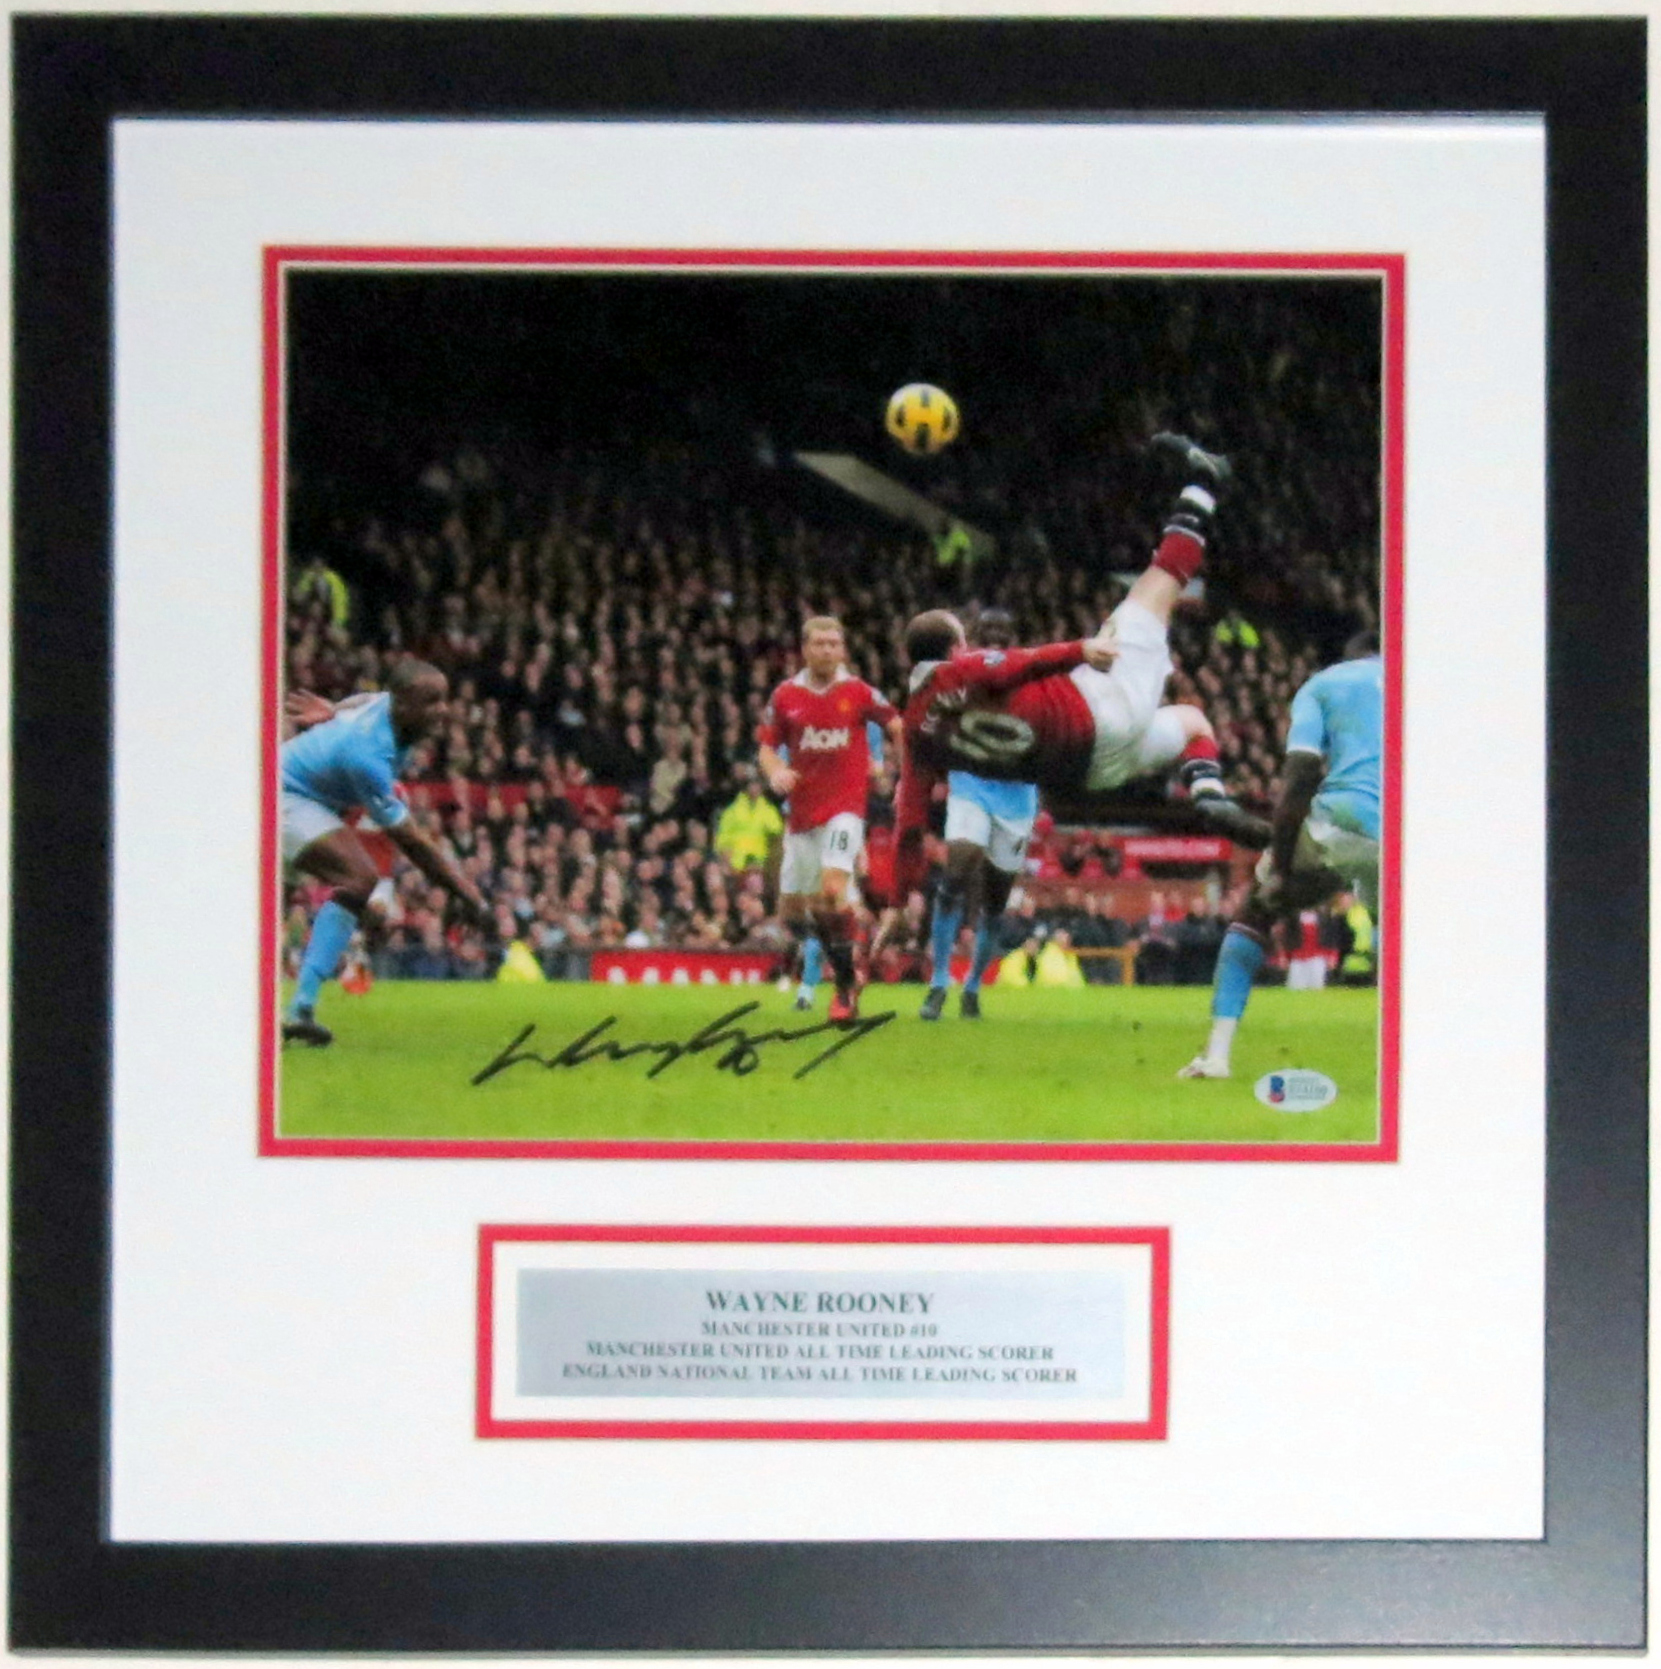 Wayne Rooney Signed Manchester United Bicycle Kick 11x14 Photo - Beckett Authentication Services BAS COA - Professionally Framed & Plate